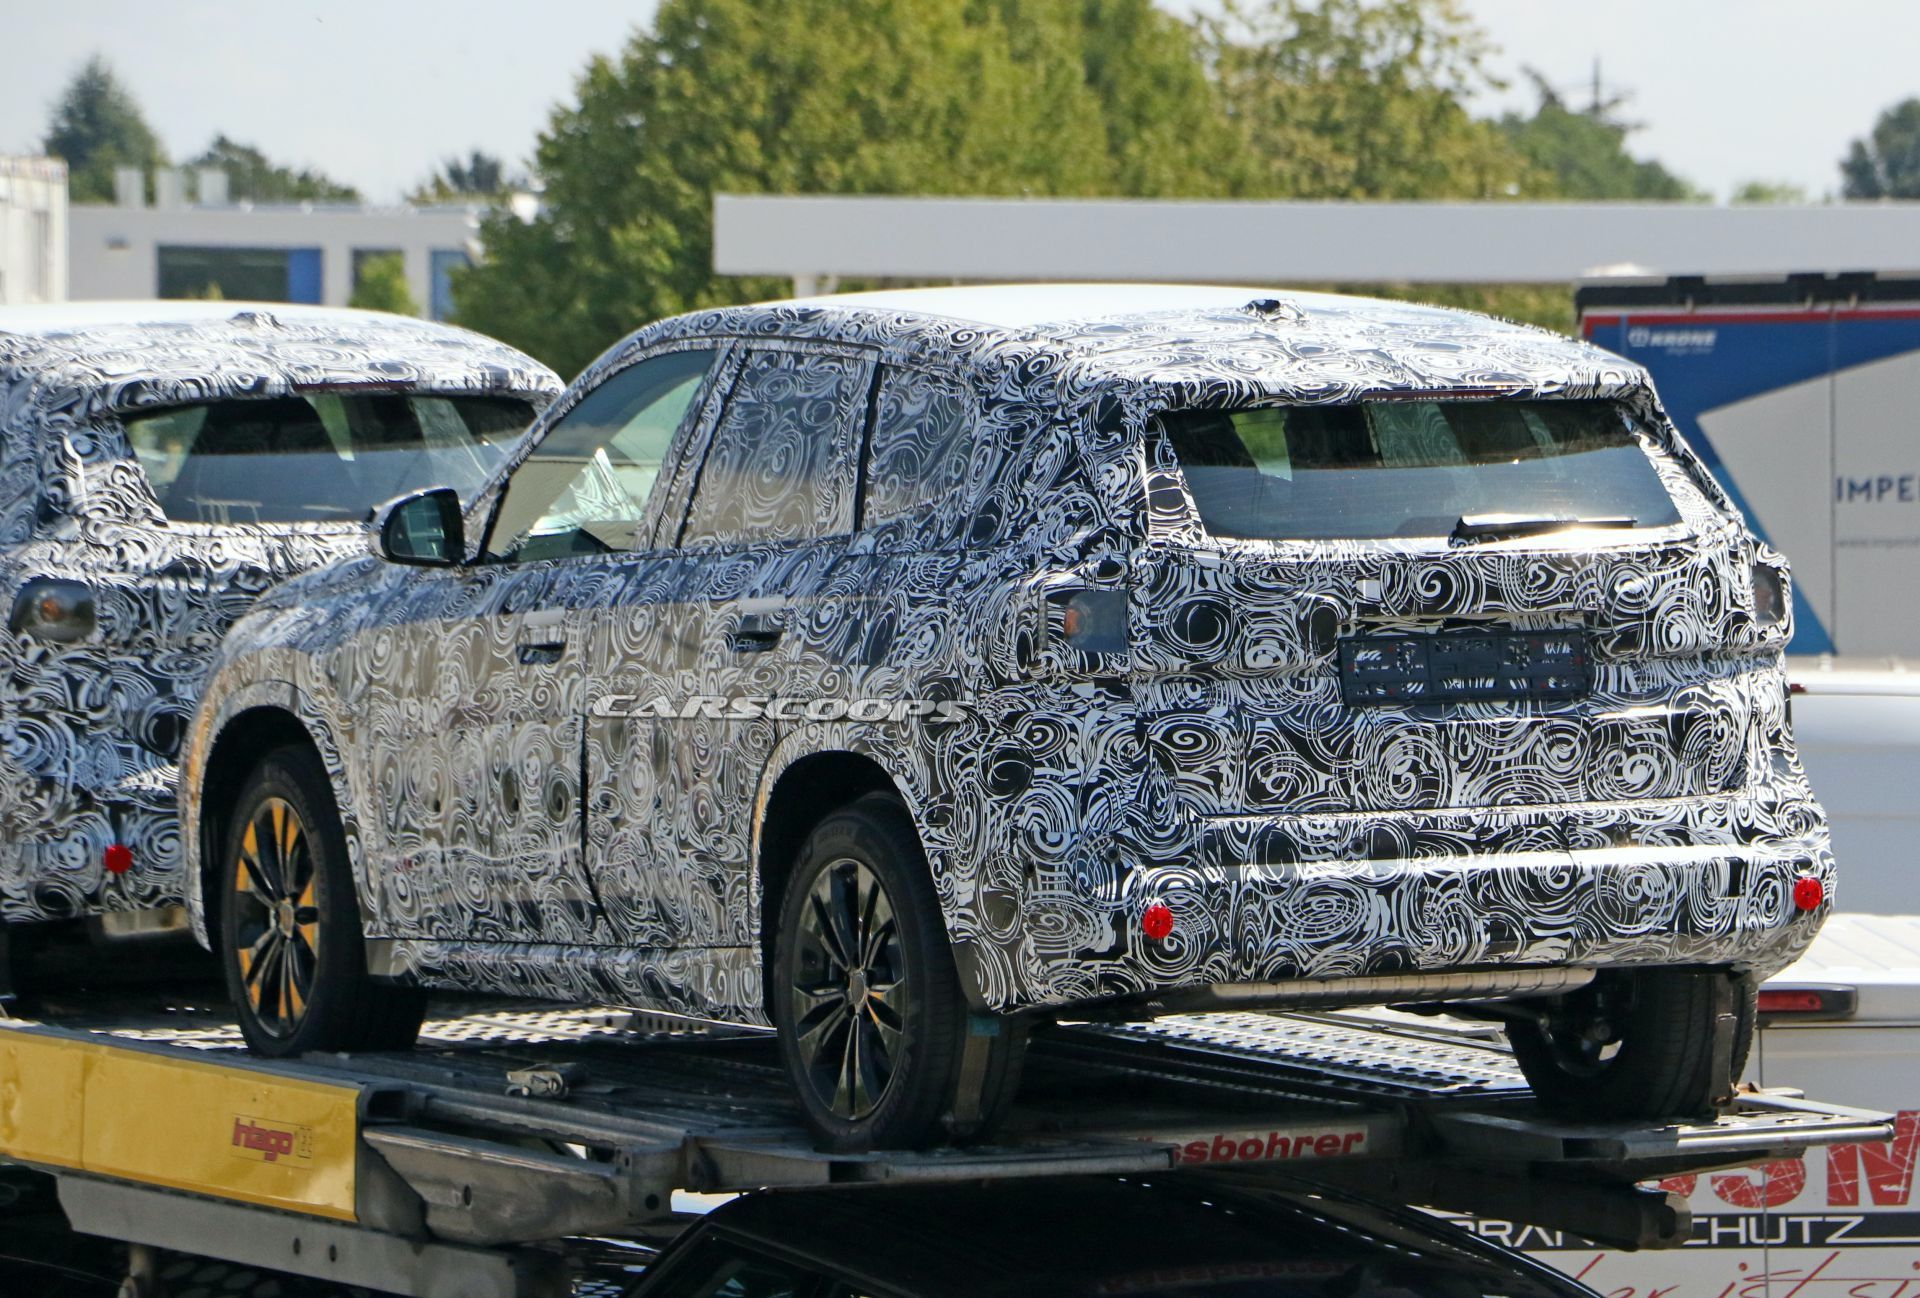 Next Gen 2023 Bmw X1 Spotted Again Appears Ready To Start Road Tests Bmwfiend Com In 2020 Road Test Bmw Spotted